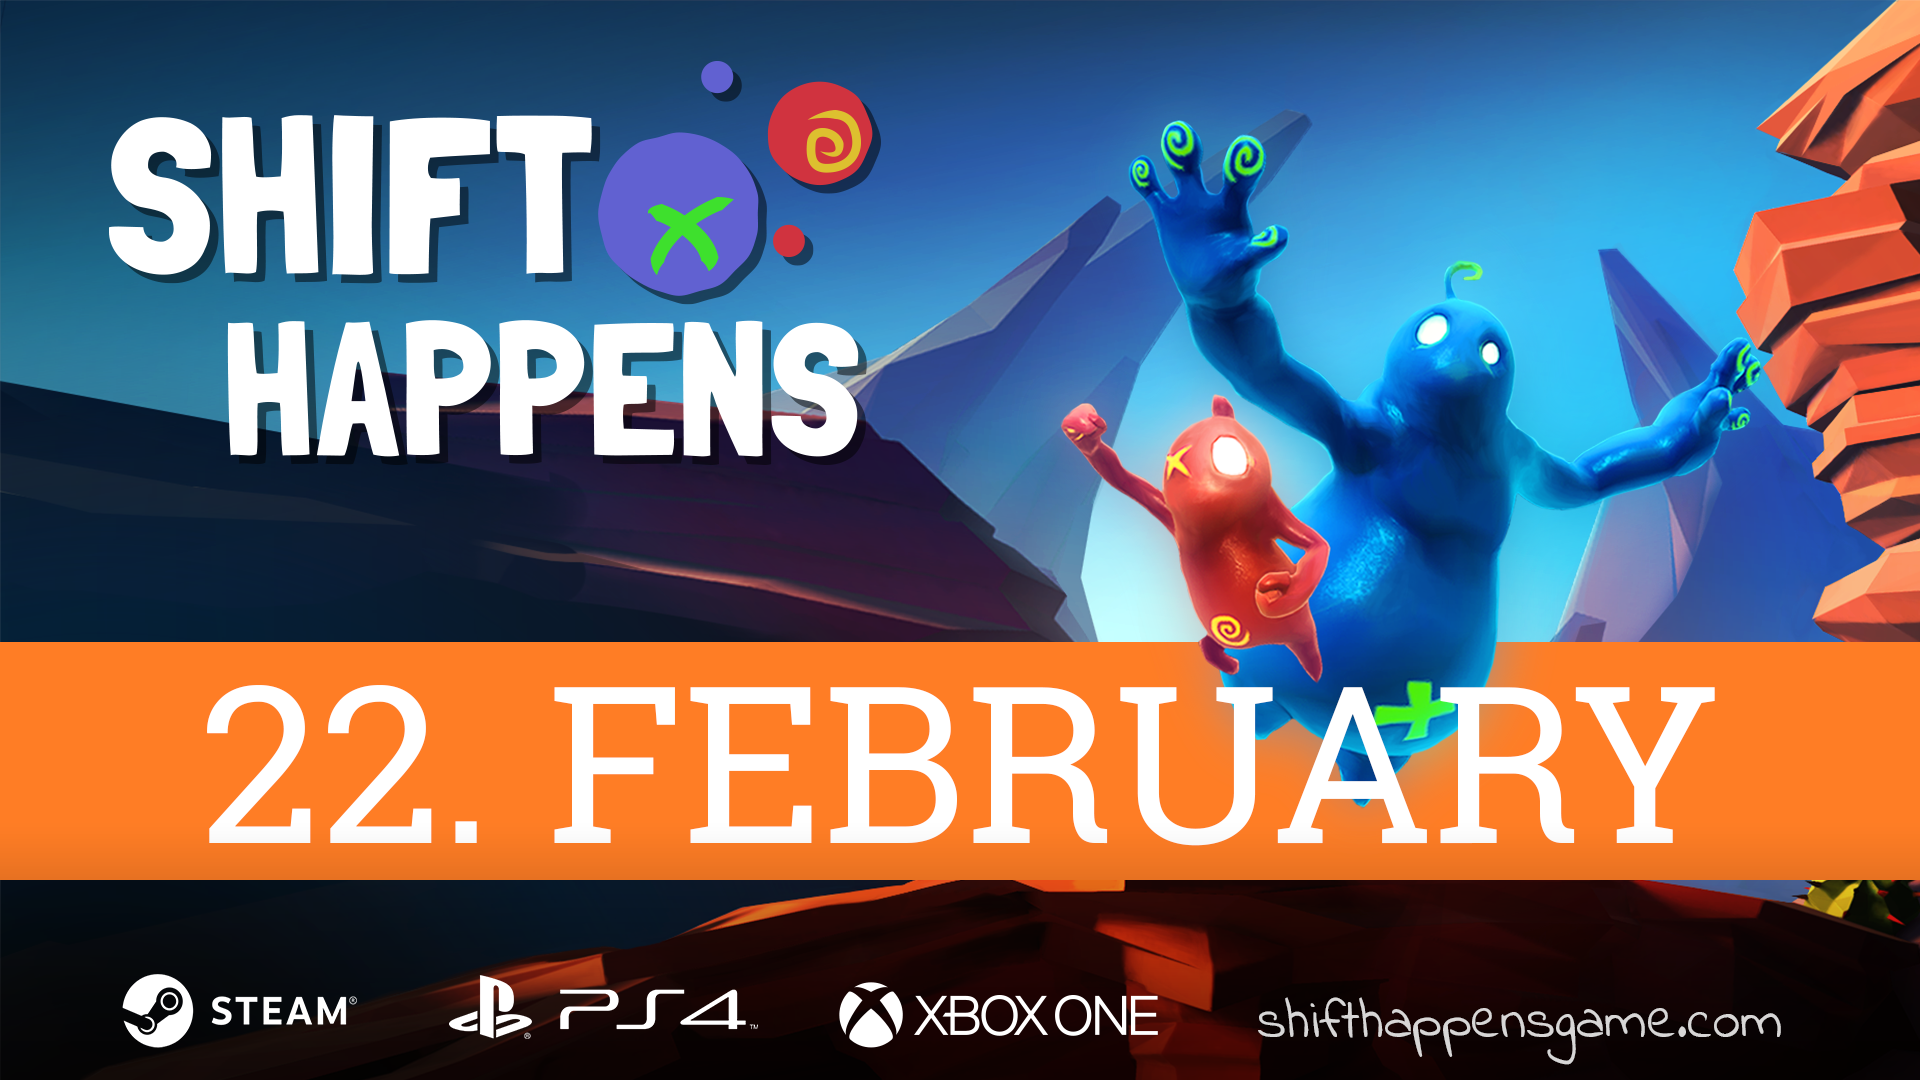 shift happens Find reviews, trailers, release dates, news, screenshots, walkthroughs, and more for shift happens here on gamespot.